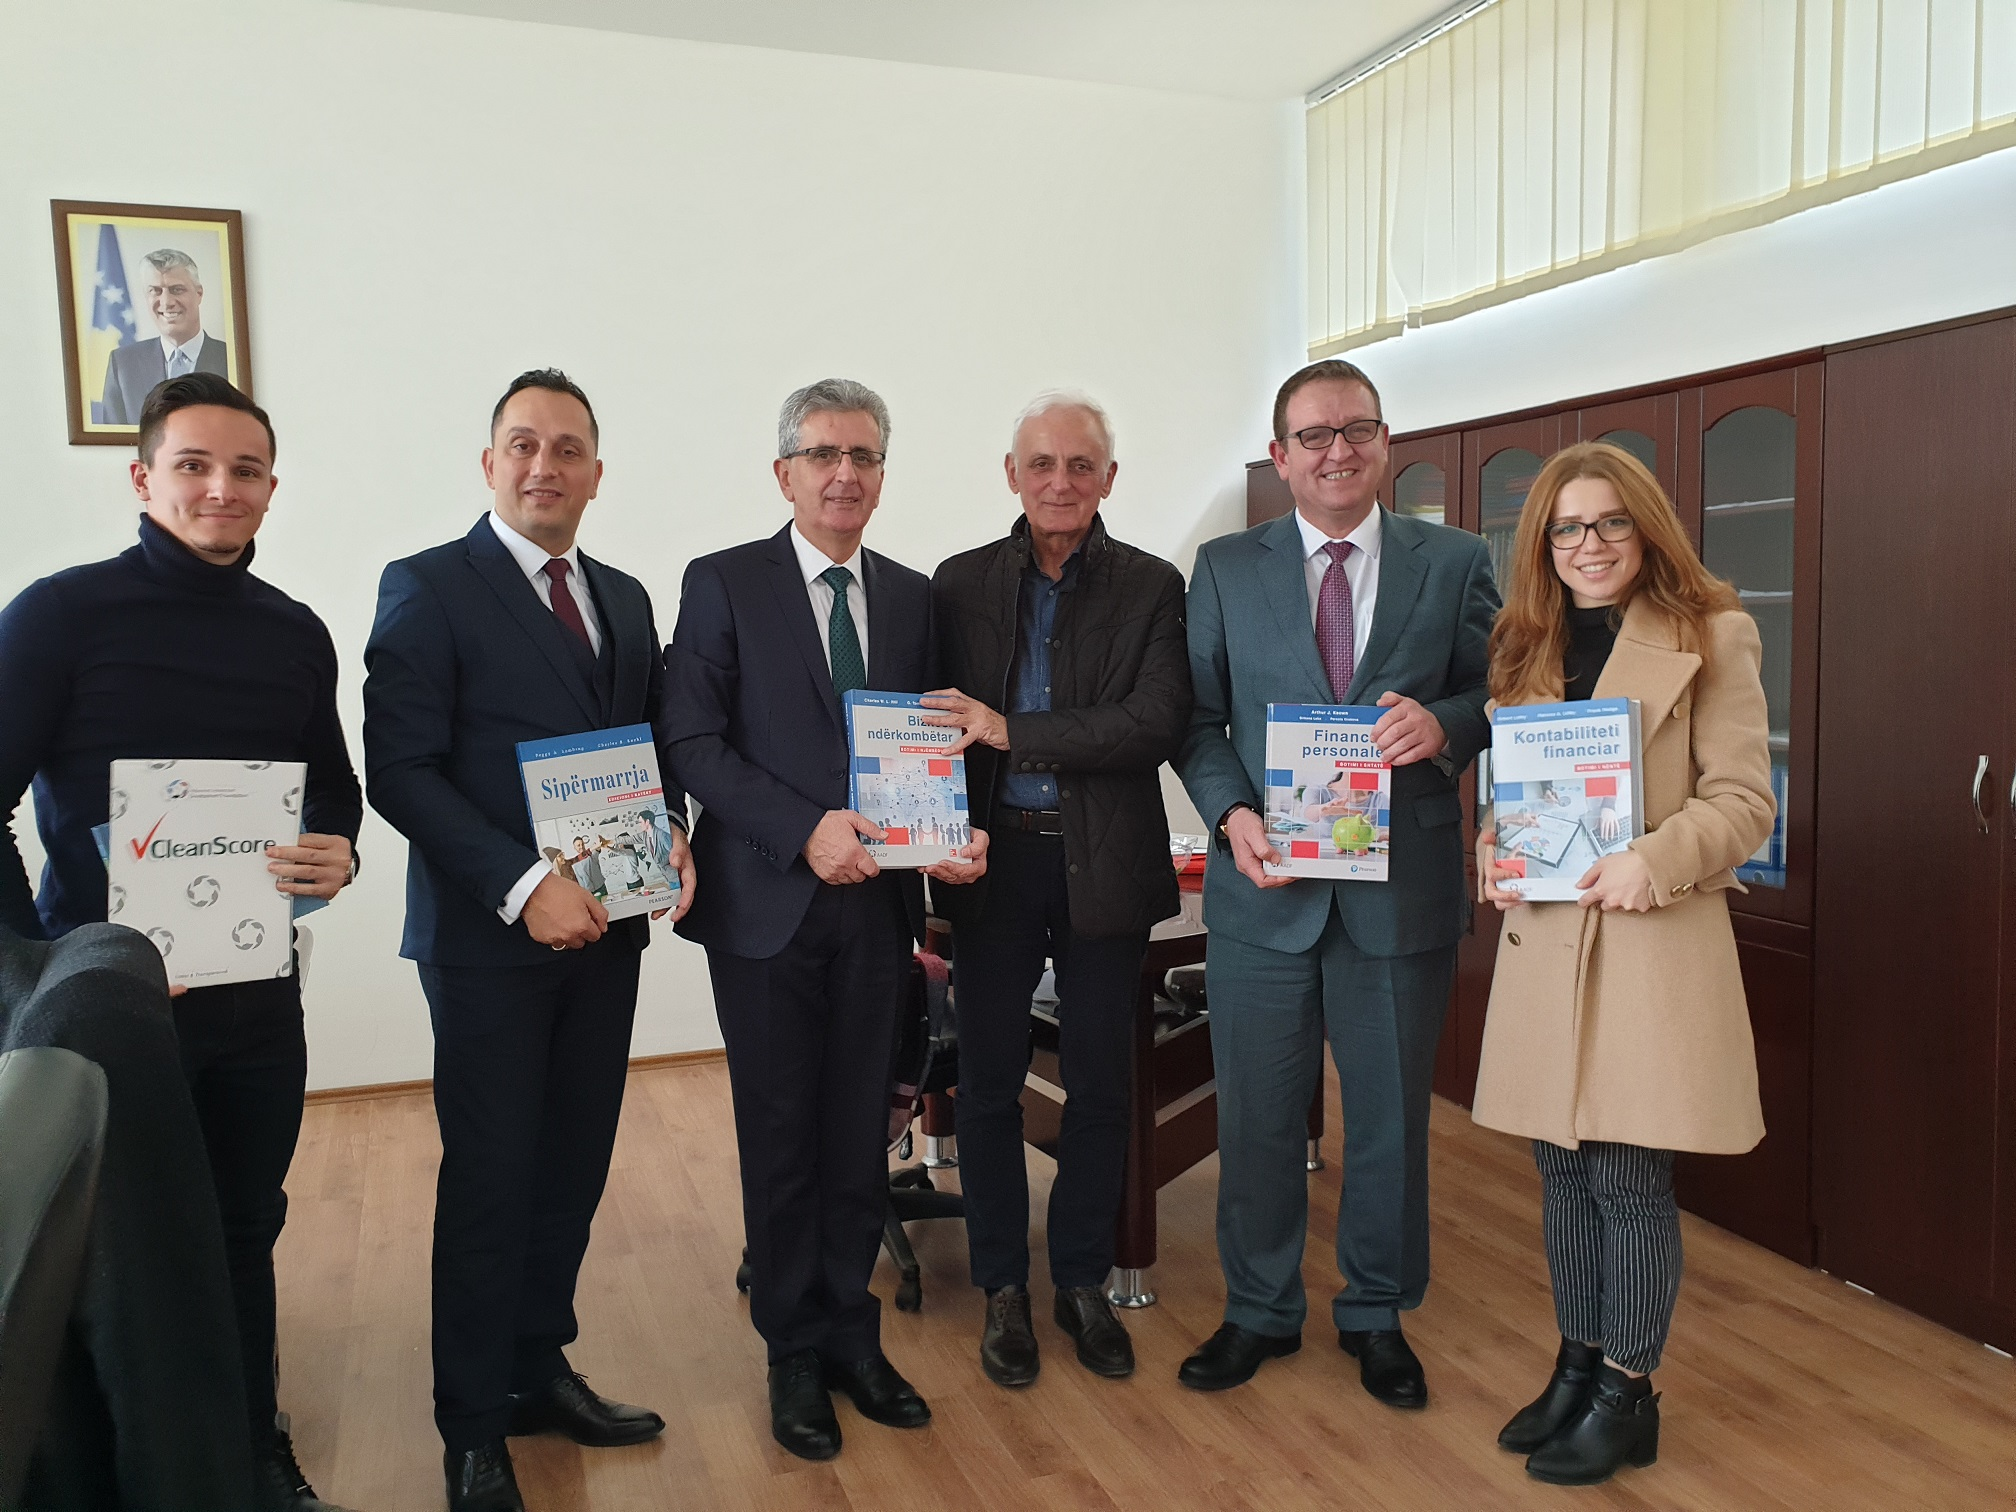 Promotion of the books in Kosovo: Financial Accounting, International Business, Personal Finance and Entrepreneurship